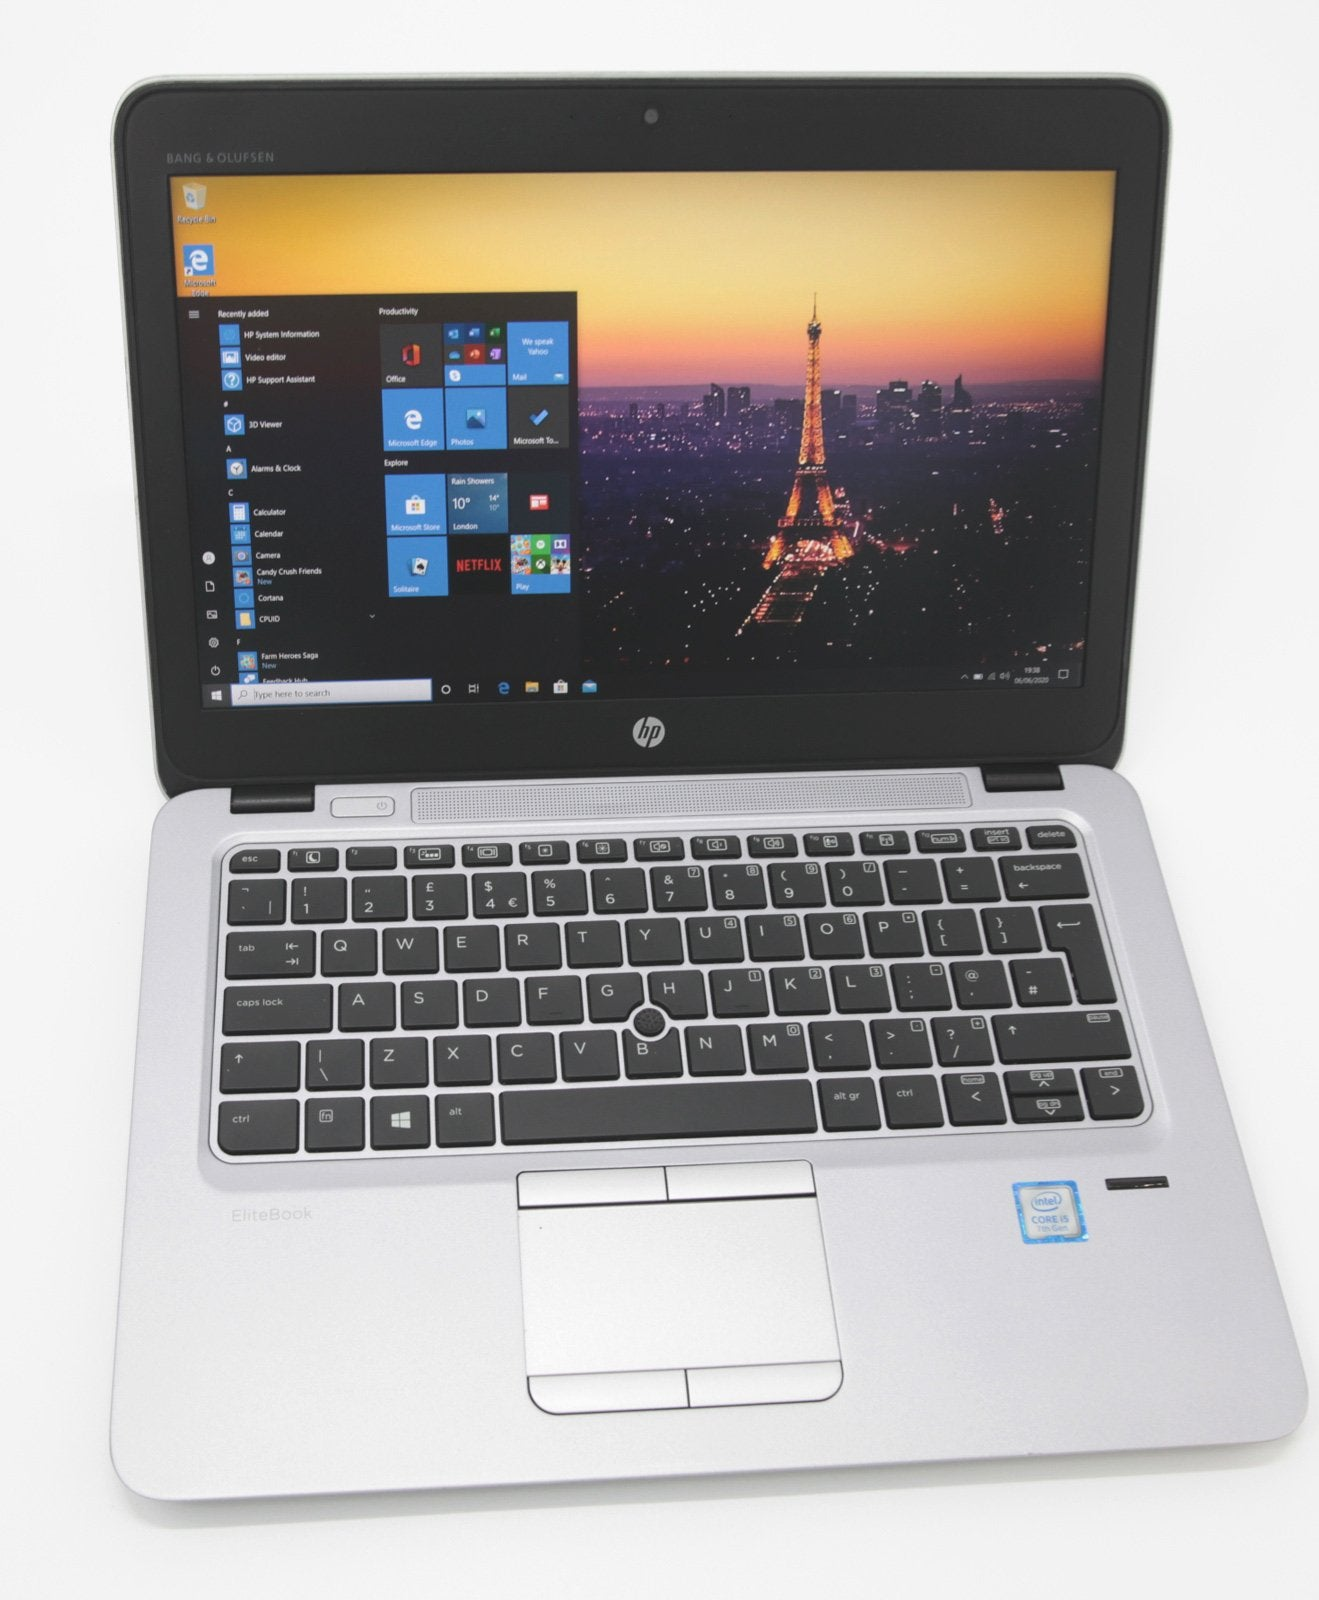 HP EliteBook 820 G4 Laptop: 7th Gen Core i5, 240GB 8GB Warranty VAT (Grade B) - CruiseTech